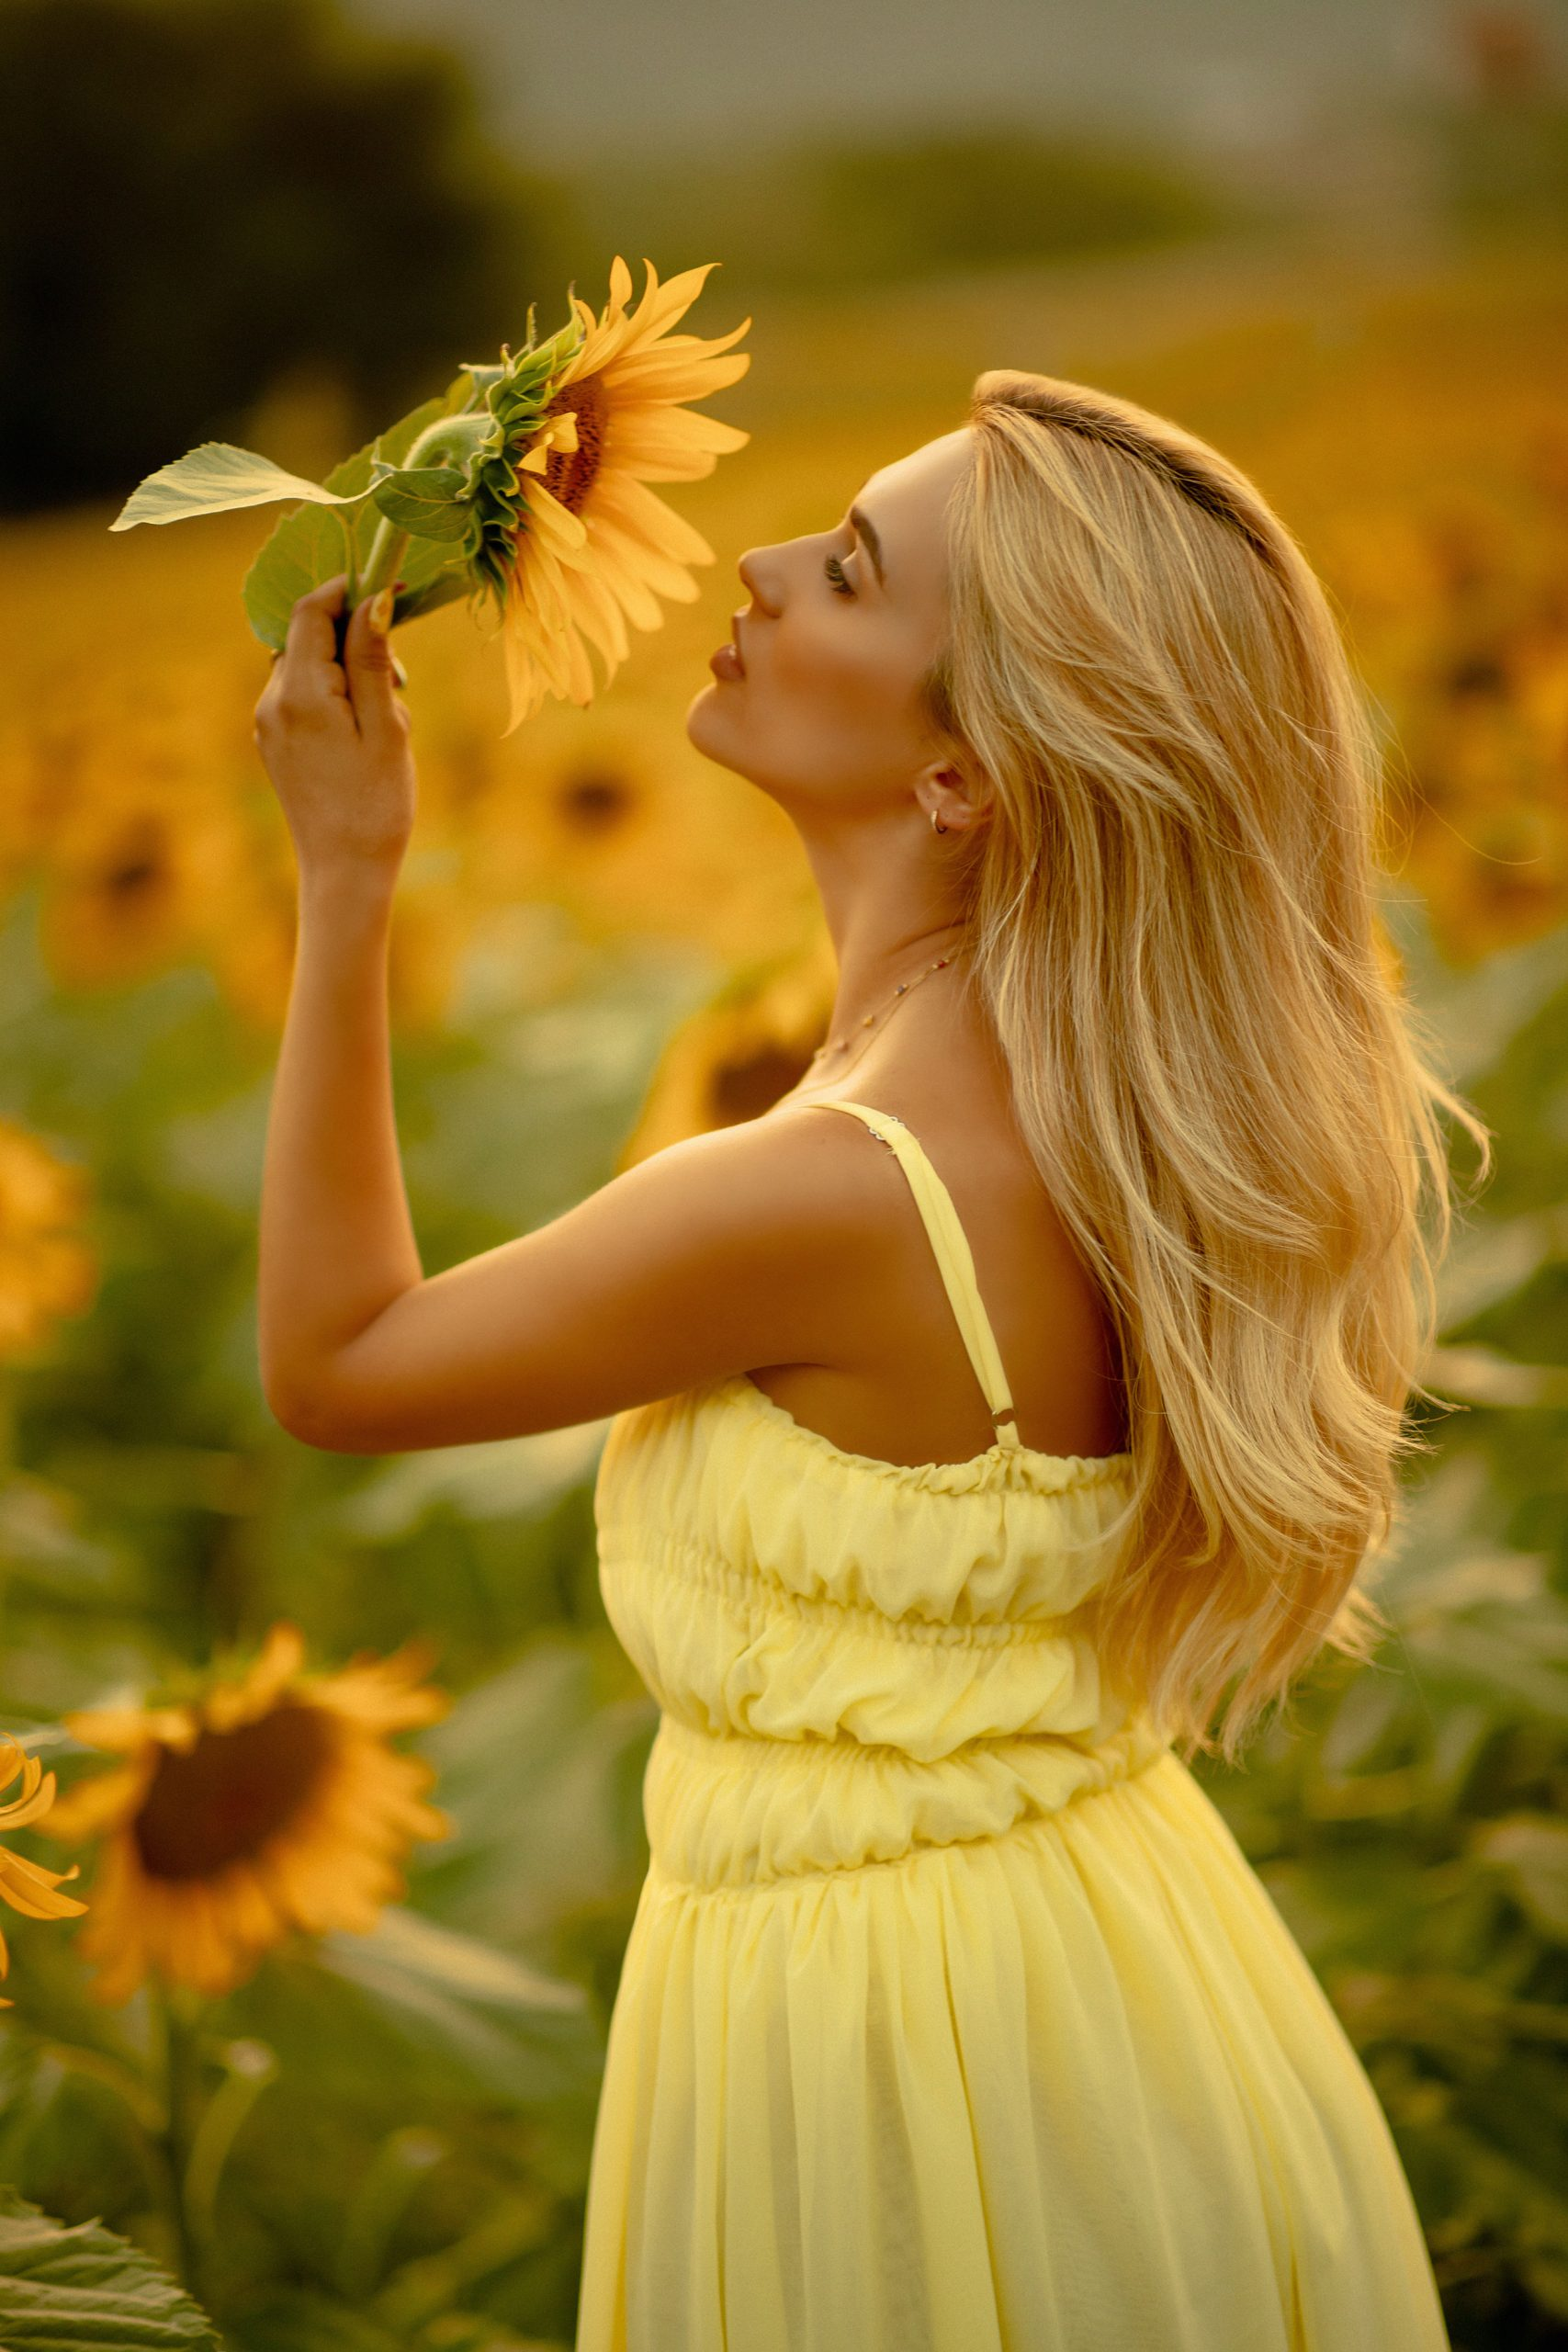 Posing during golden hour with a sunflower in her hand